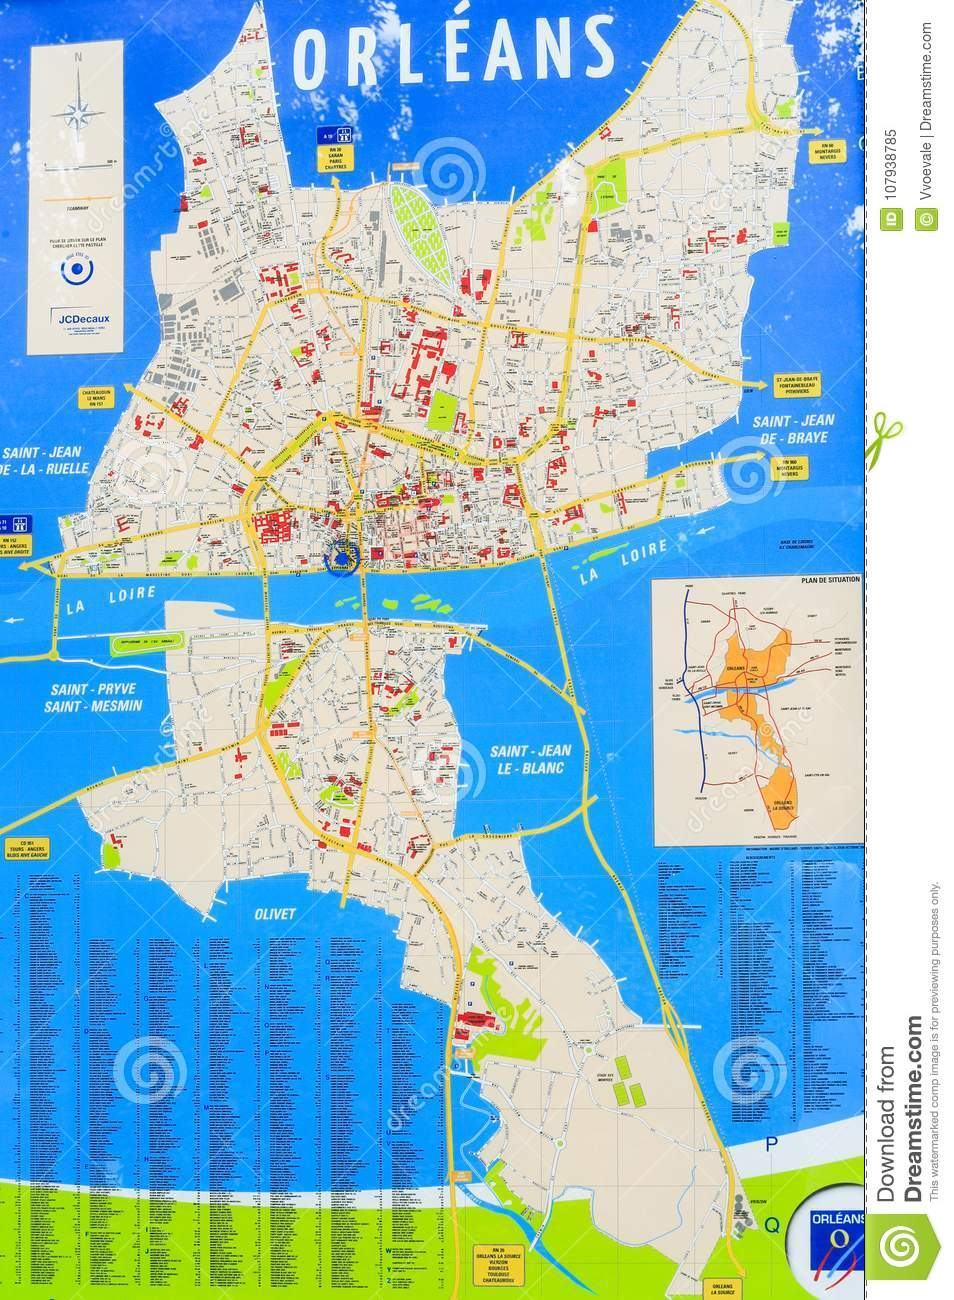 Orleans City Map On Outdoor Stand Editorial Image Image Of Trip - Orleans france map